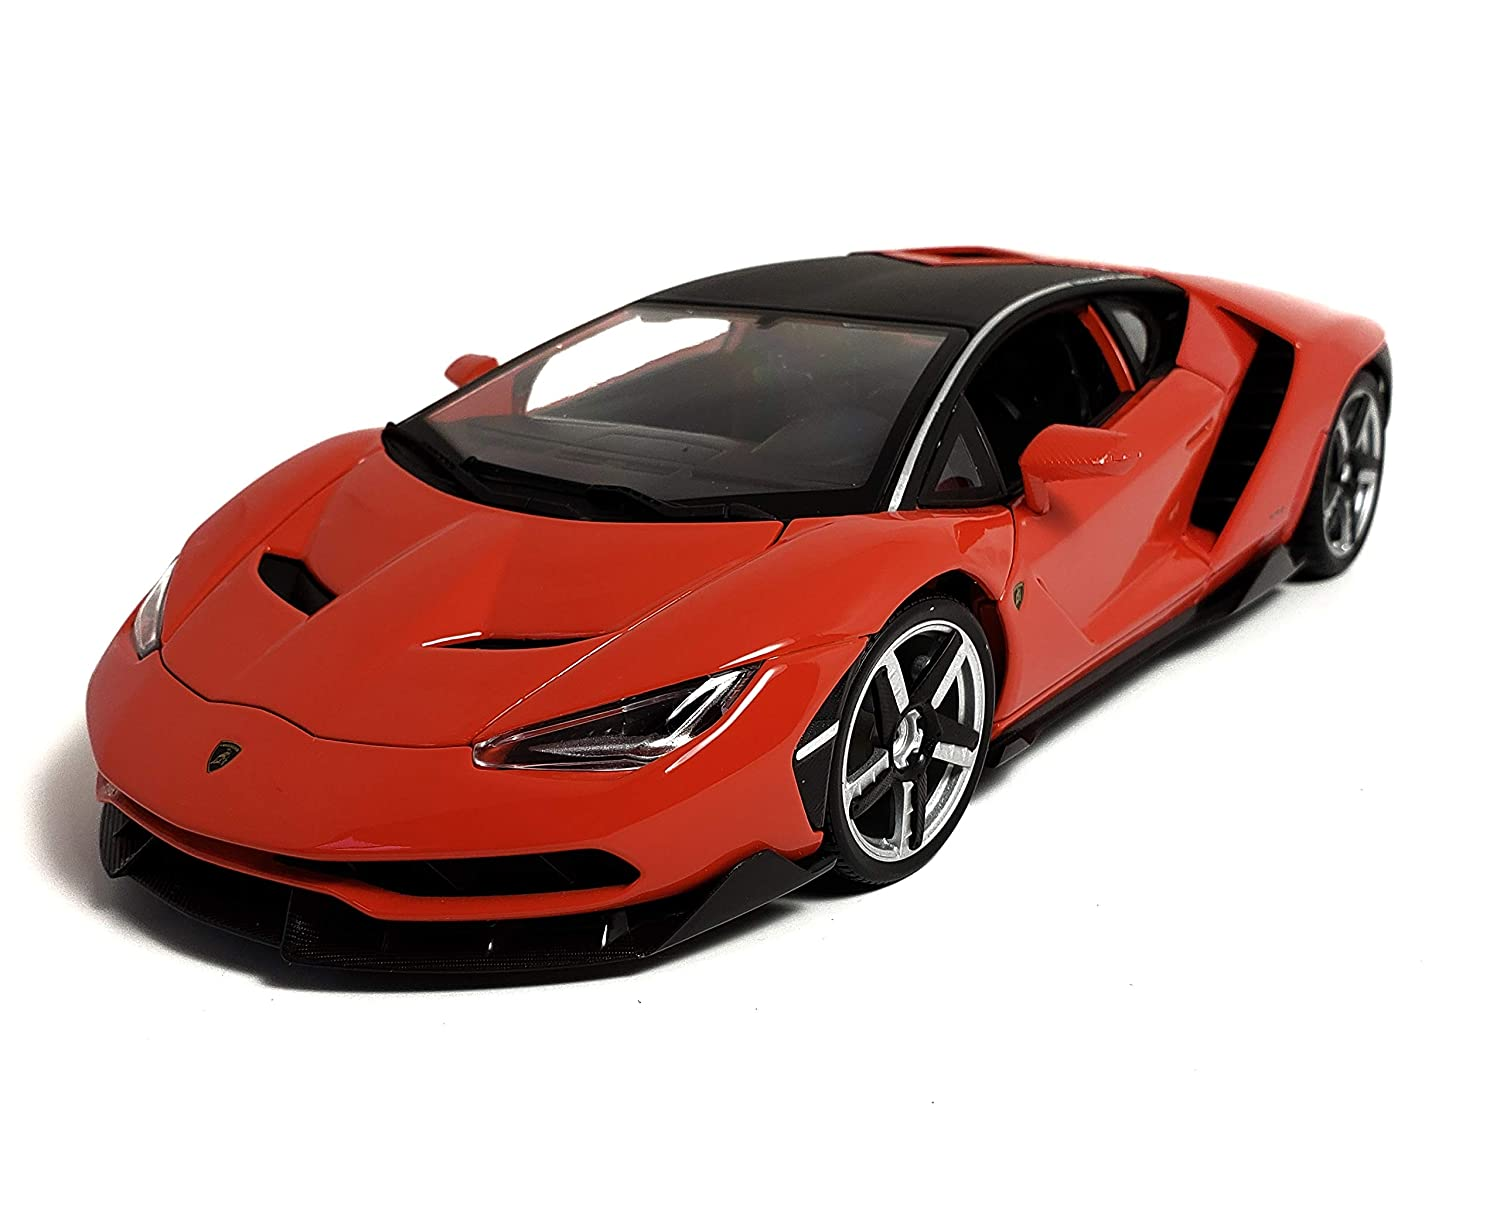 Maisto Special Edition Series 1:18 Scale Die-Cast Metal Models (Lamborghini Centenario, Blue) china